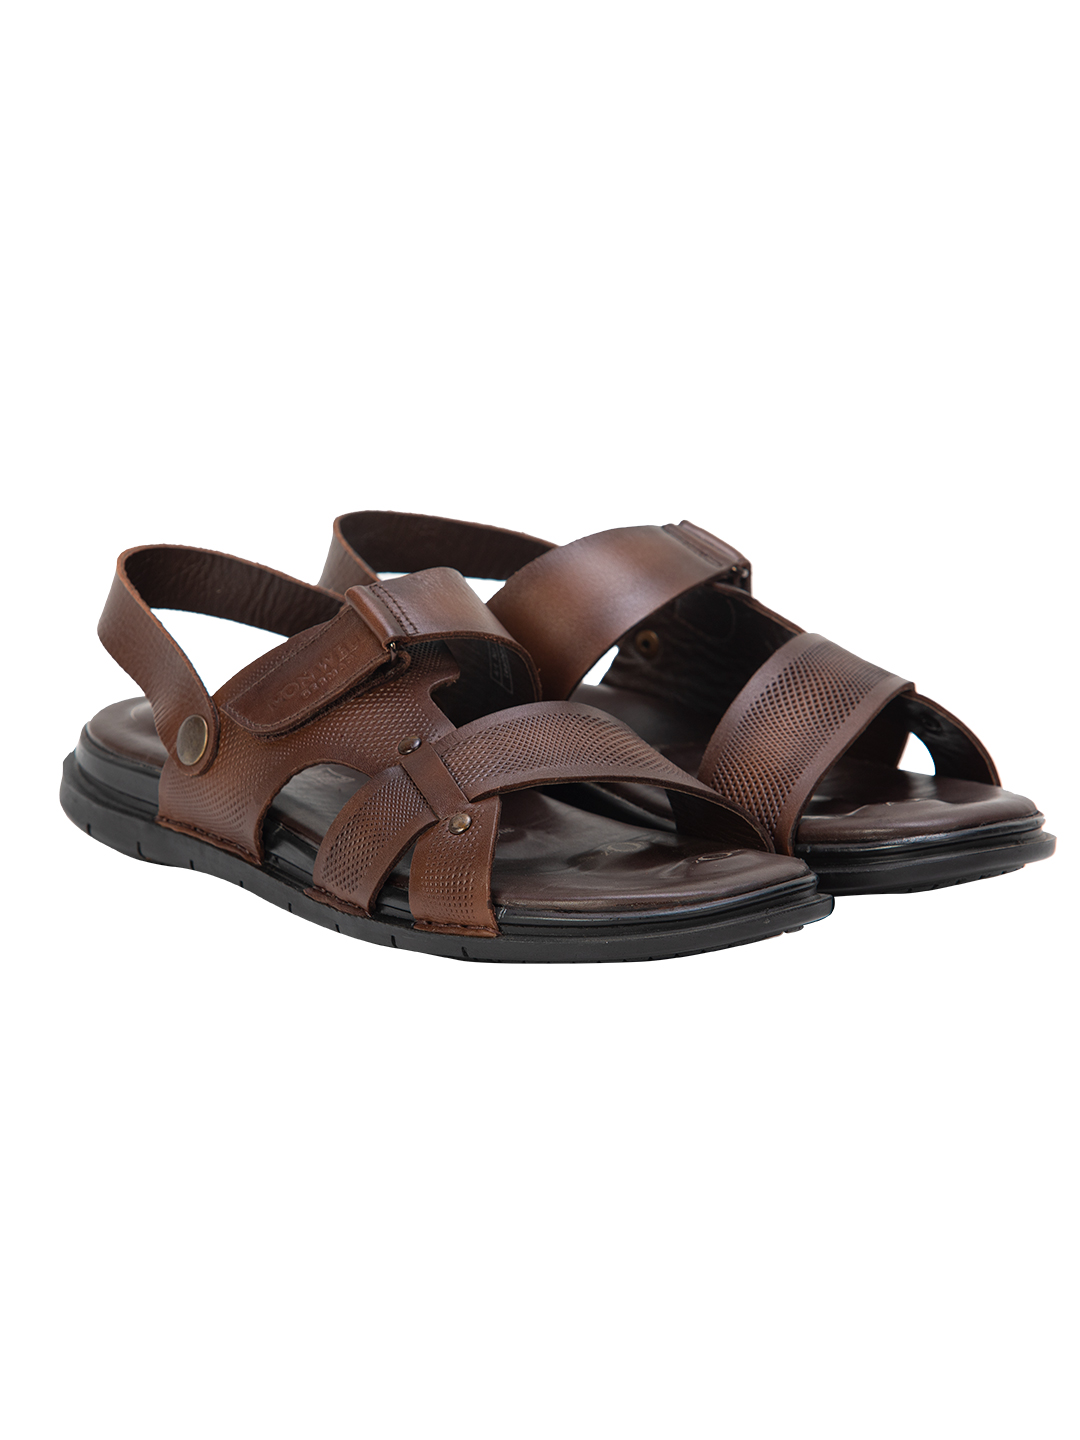 Buy VON WELLX GERMANY COMFORT BROWN OWEN SANDALS In Delhi